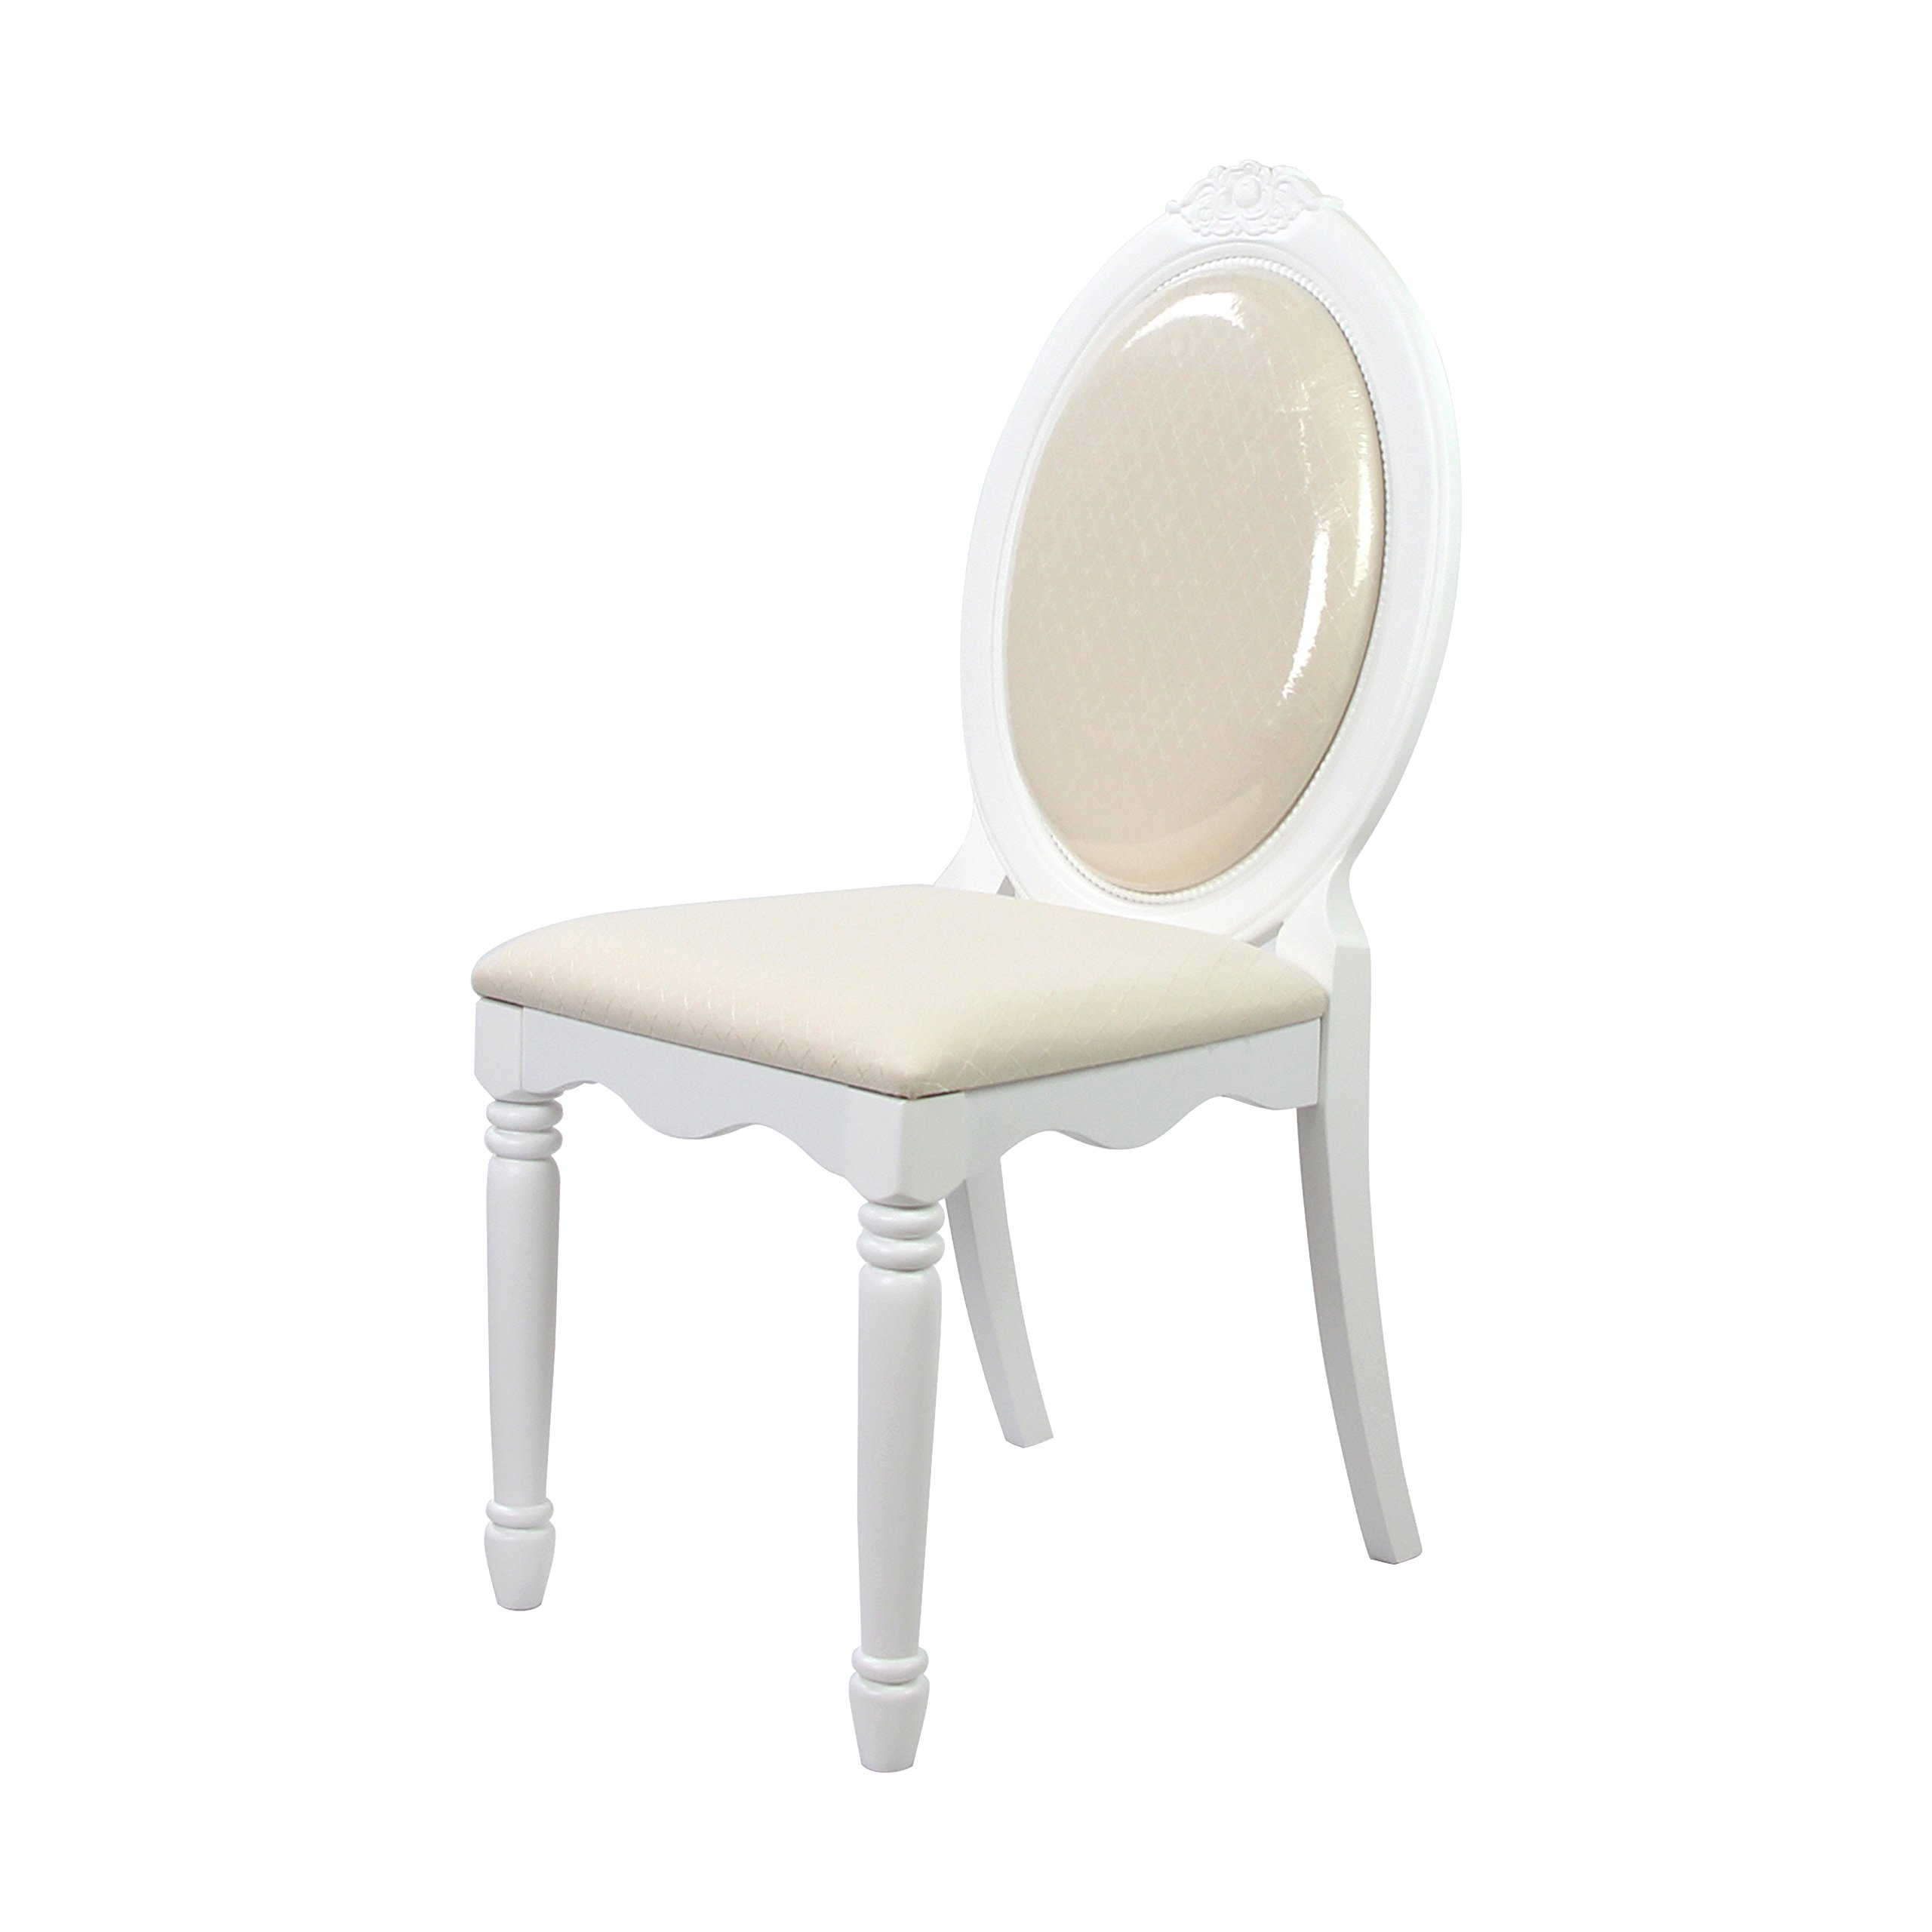 ACME 01689 Flora Chair, White Finish